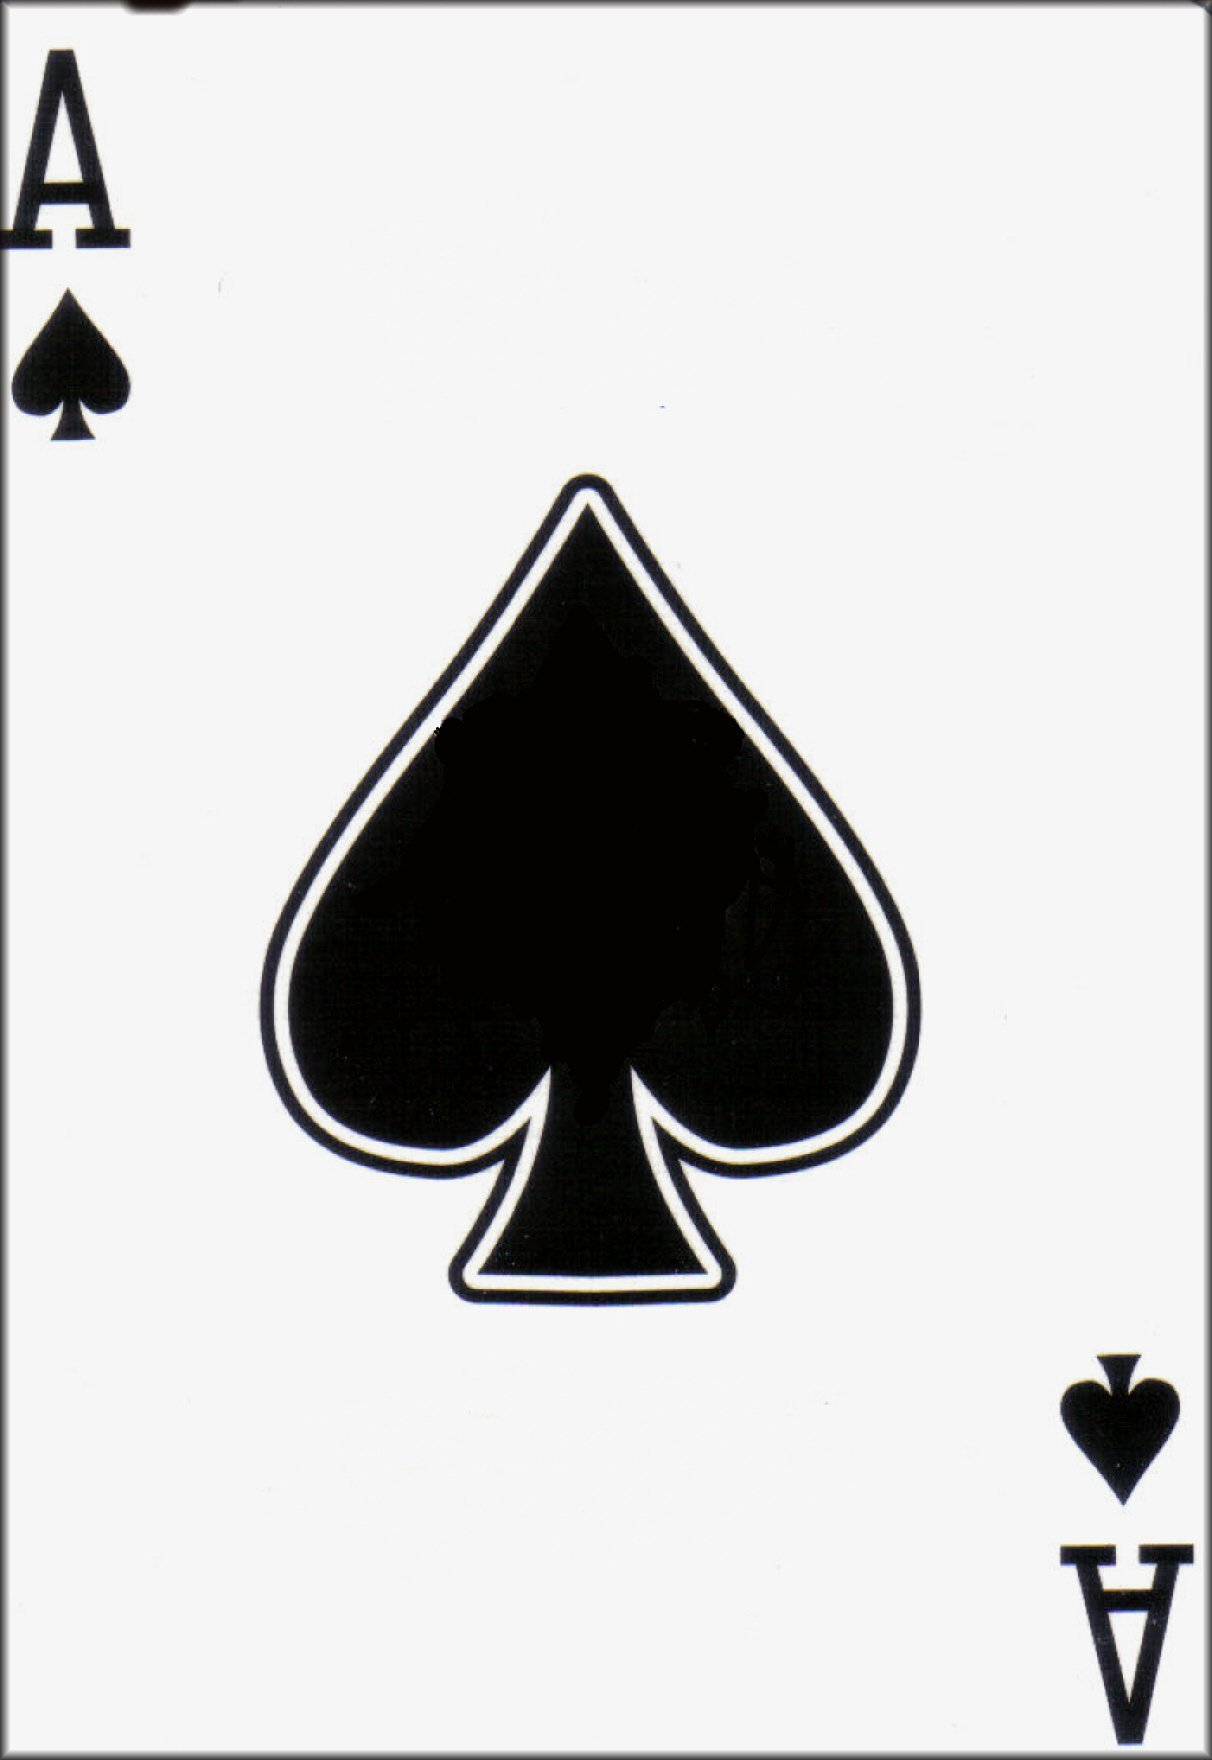 Ace card clip art image black and white Ace Of Spades Playing Card Clipart - Clipart Kid image black and white